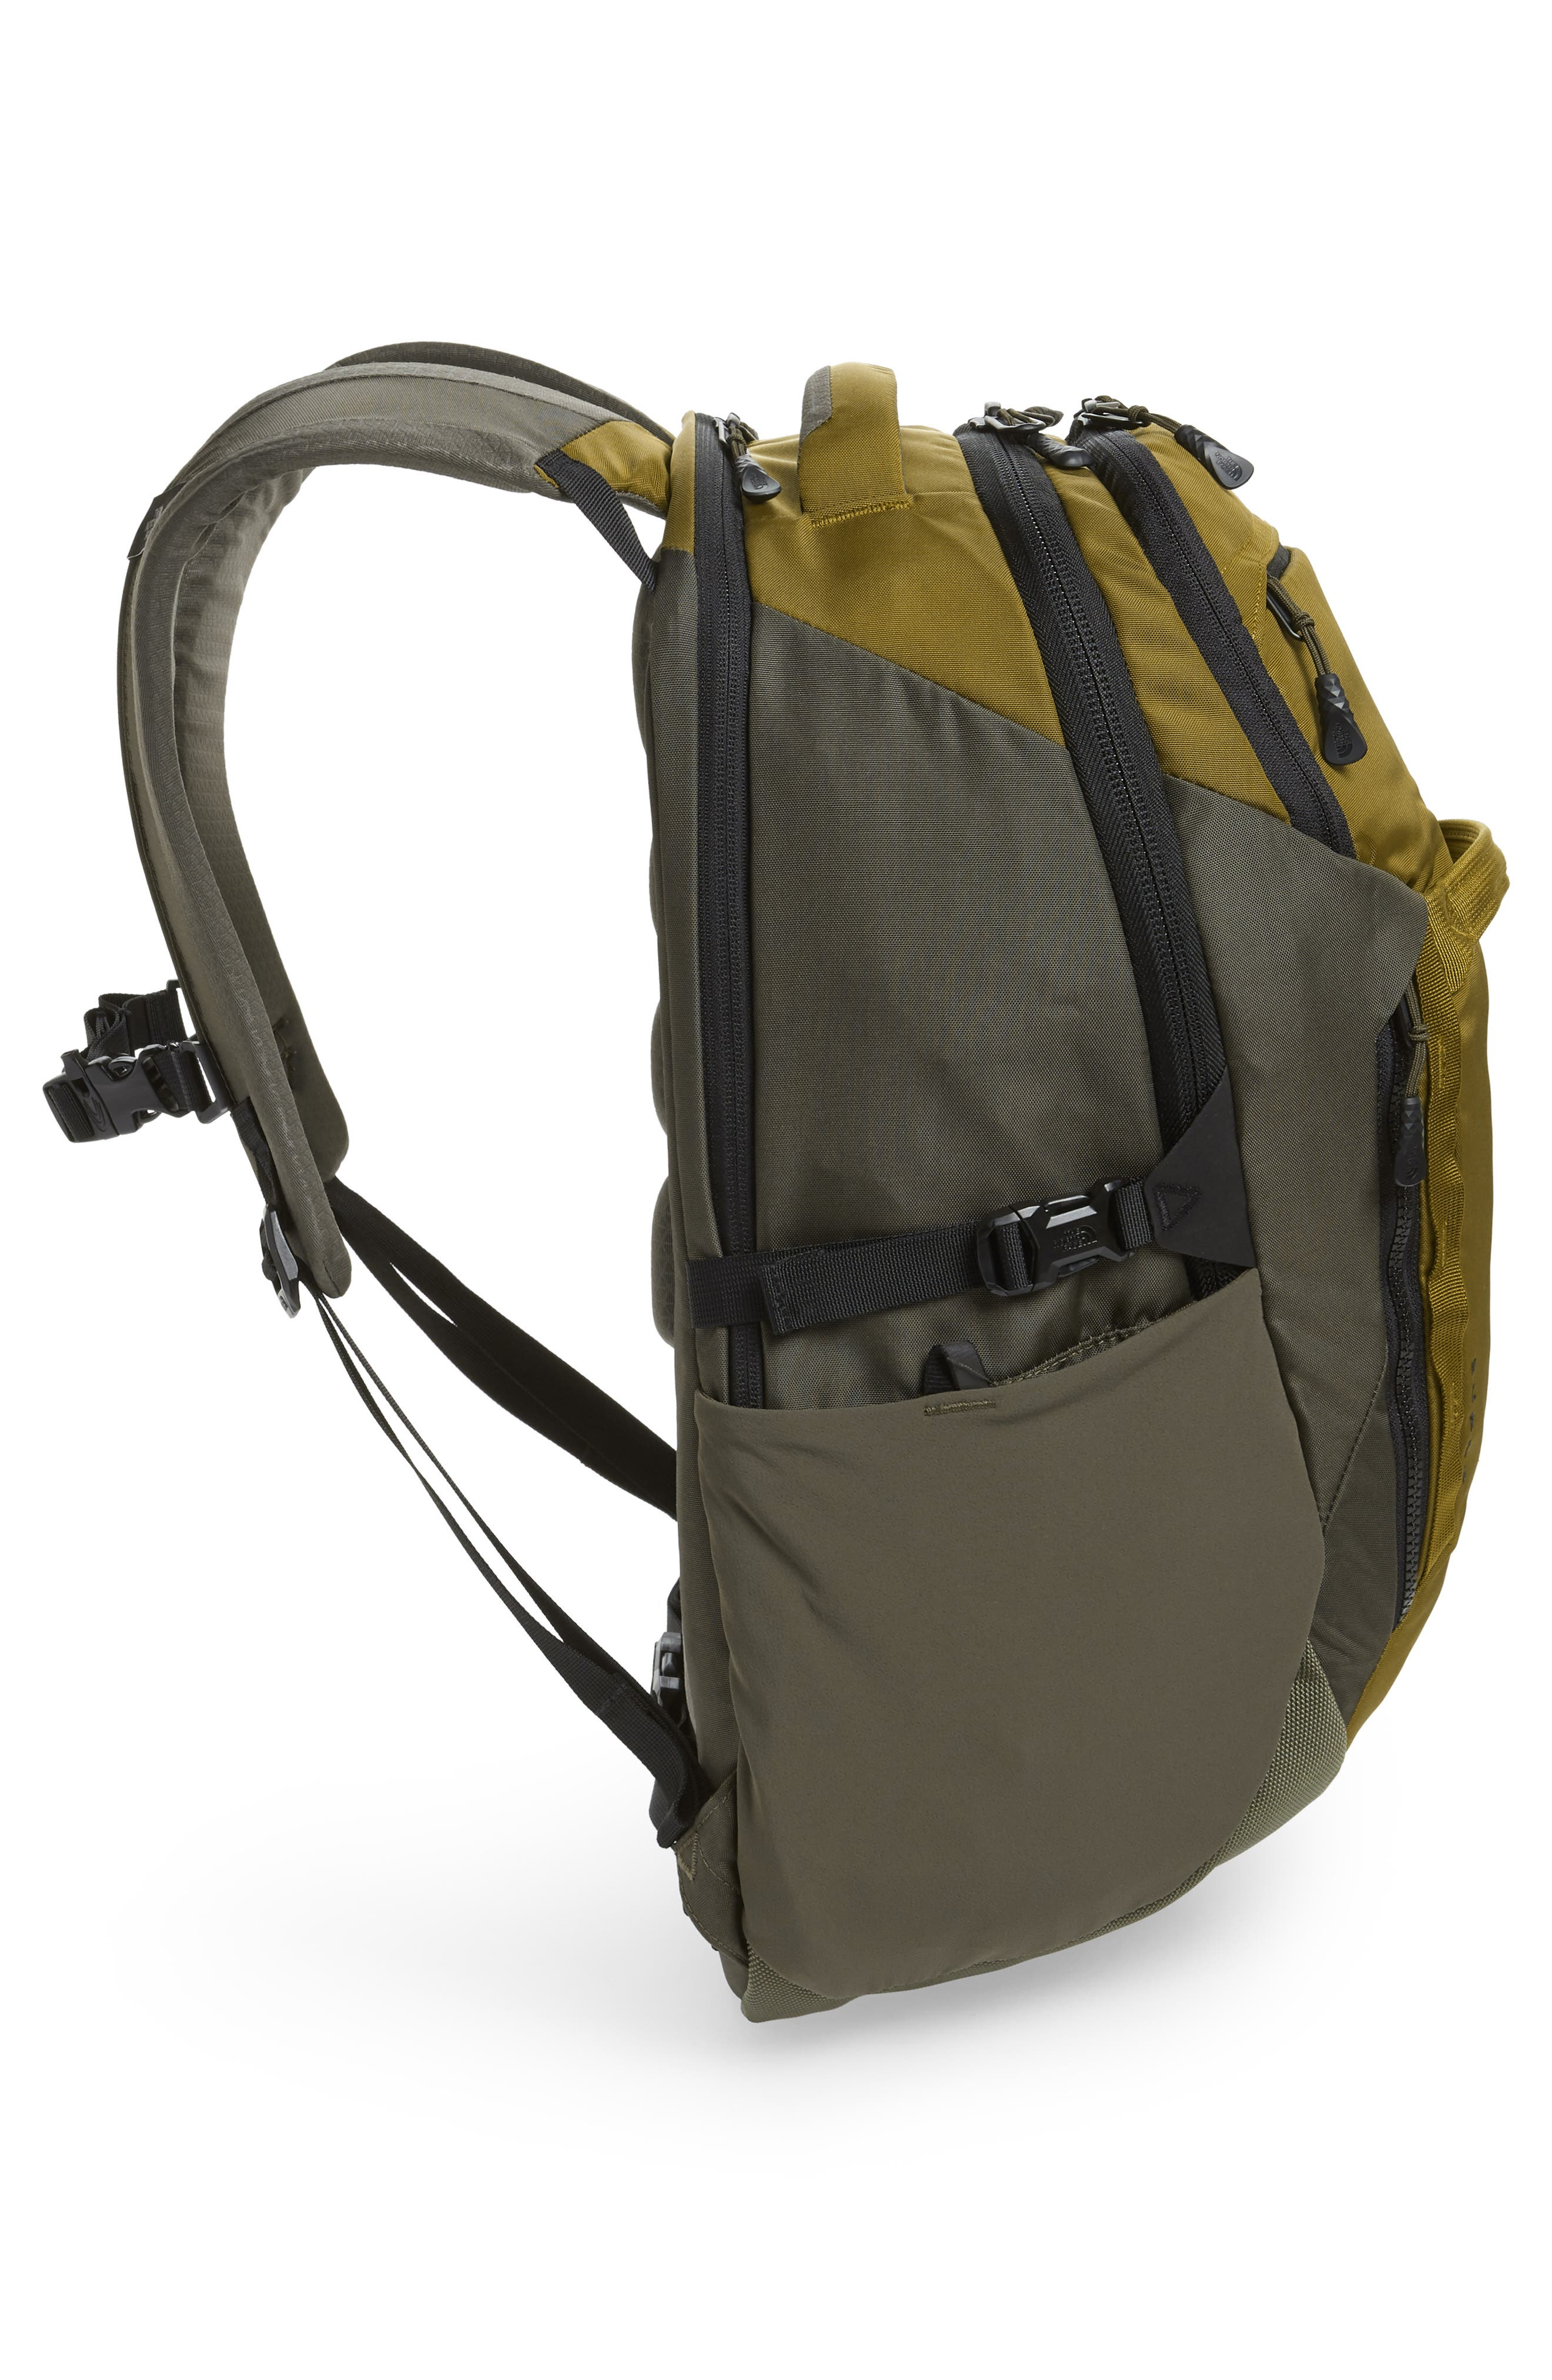 Surge Backpack,                             Alternate thumbnail 5, color,                             FIR GREEN/ NEW TAUPE GREEN